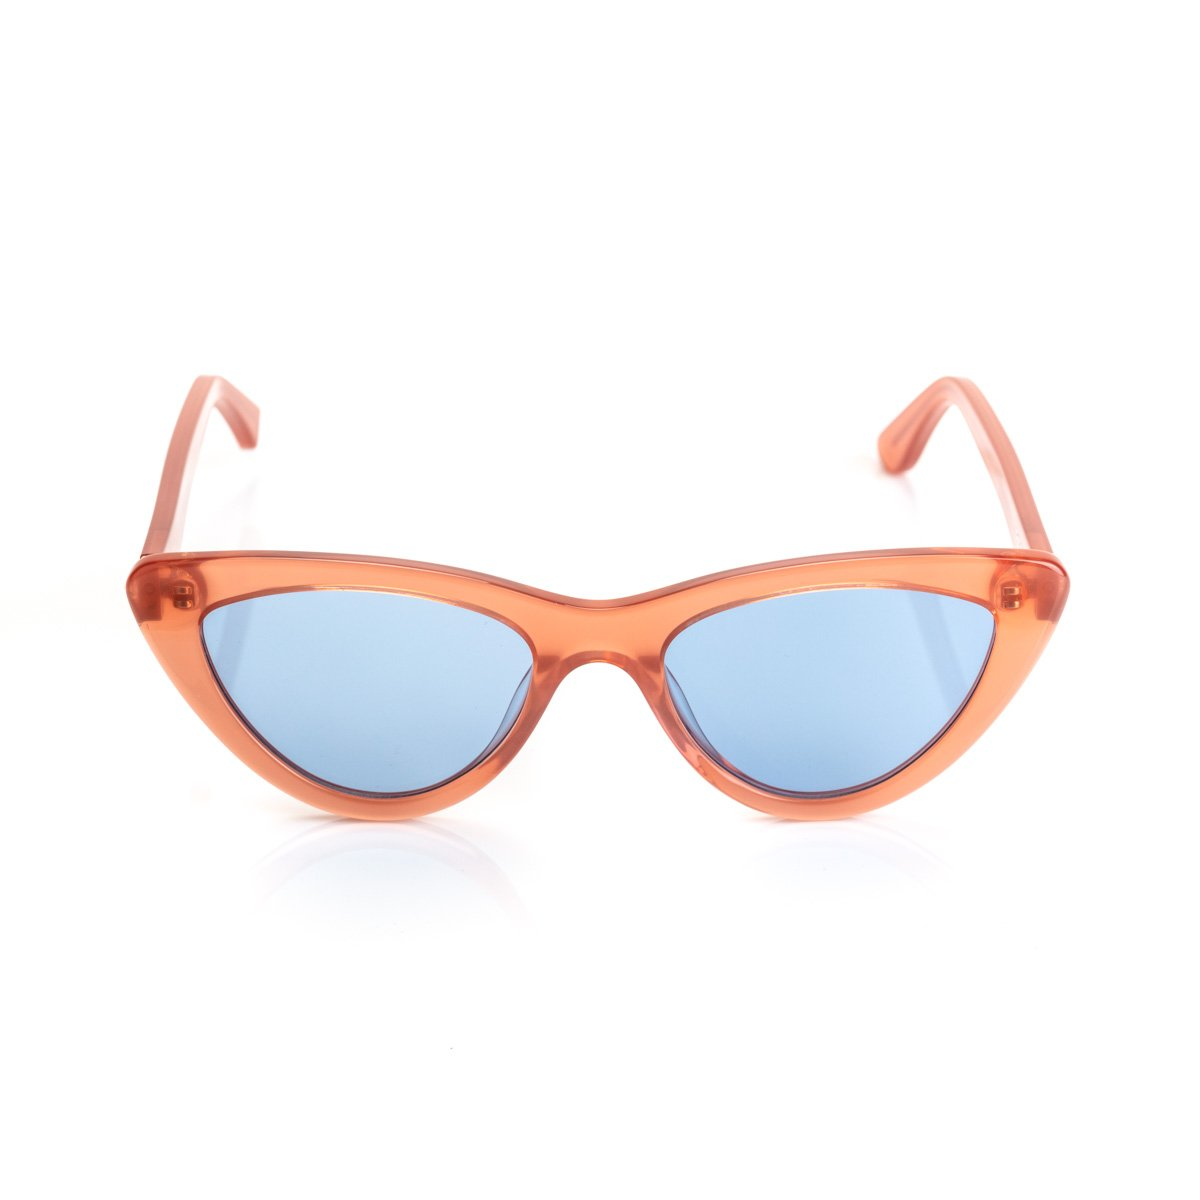 Narrow Cat Eye Sunglasses Meria by Pala